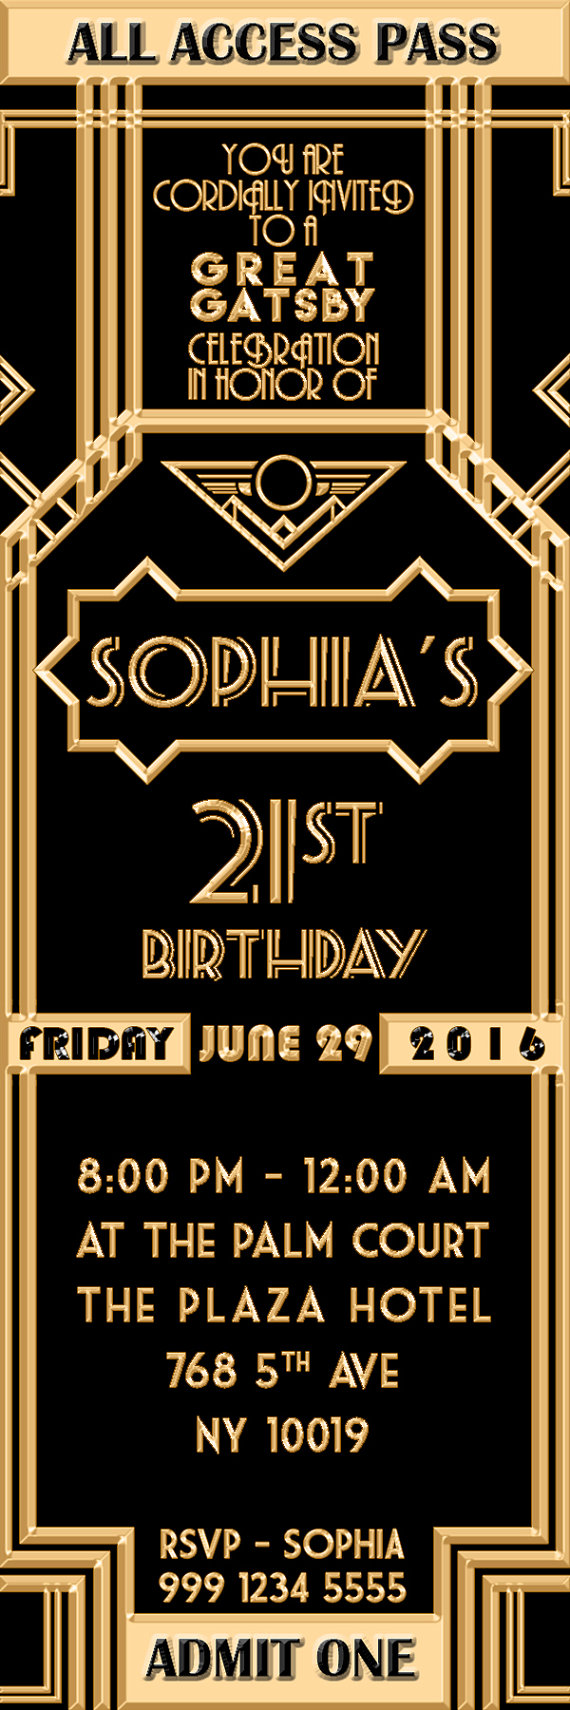 Great Gatsby Invitation Ticket Birthday By LearnFromTheMaster